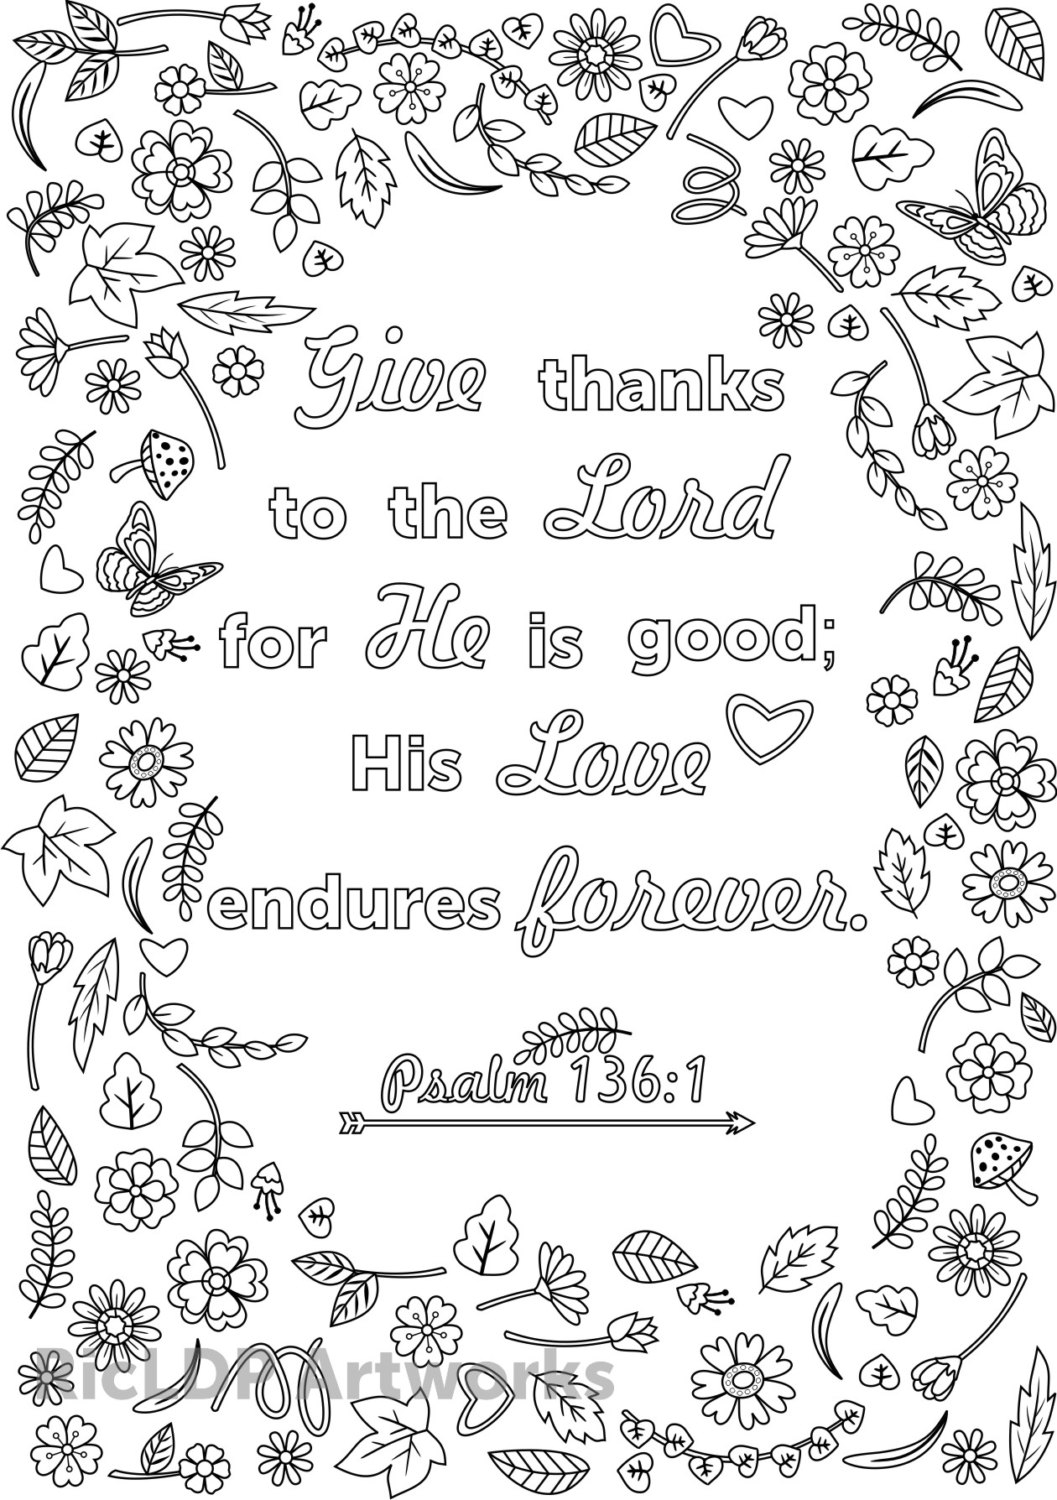 Bible Verse Coloring Pages for Adults - Three Bible Verse Coloring Pages for Adults Printable